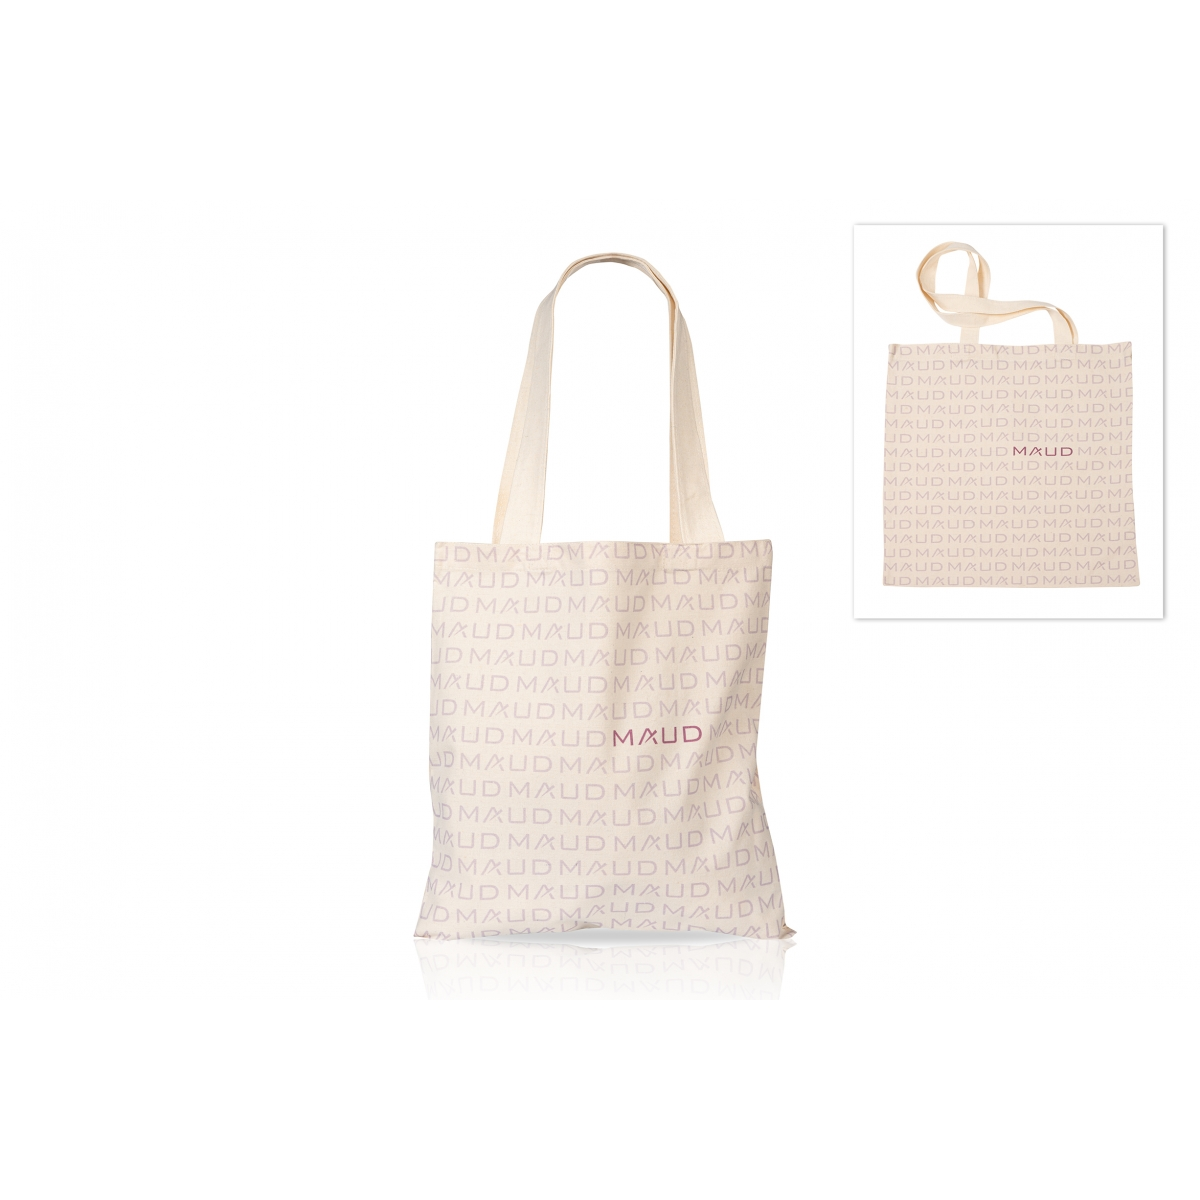 VETEMENTS - MAUD COSMETICS - TOTE BAG MAUD ECRU (SERIE LIMITEE)